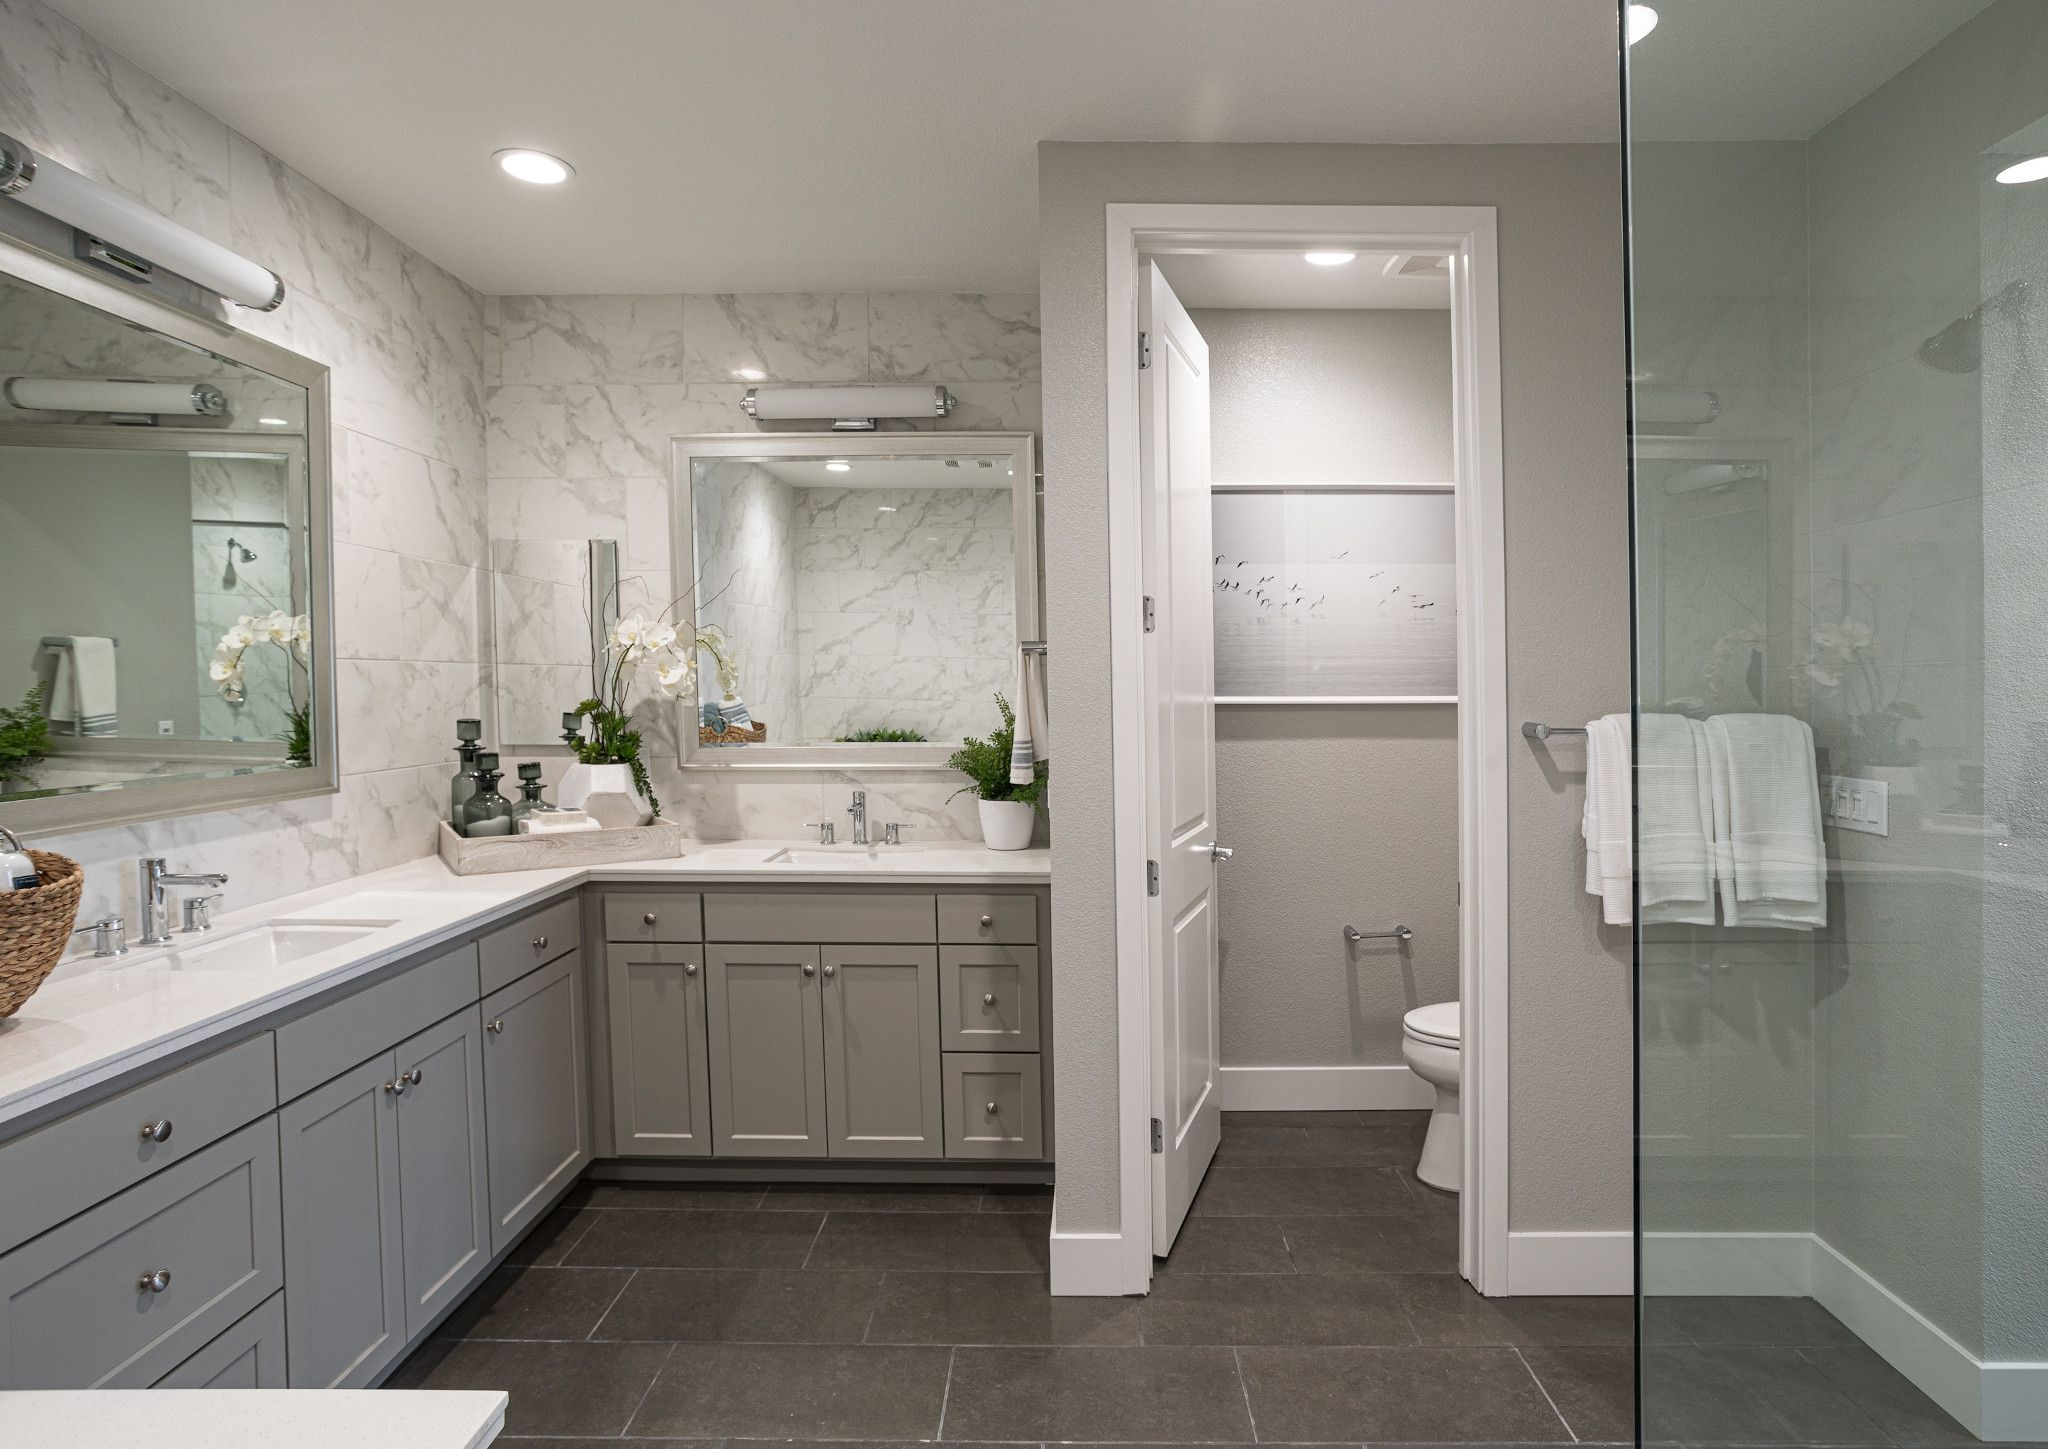 Bathroom featured in the Plan 4D By Shea Homes in Oakland-Alameda, CA